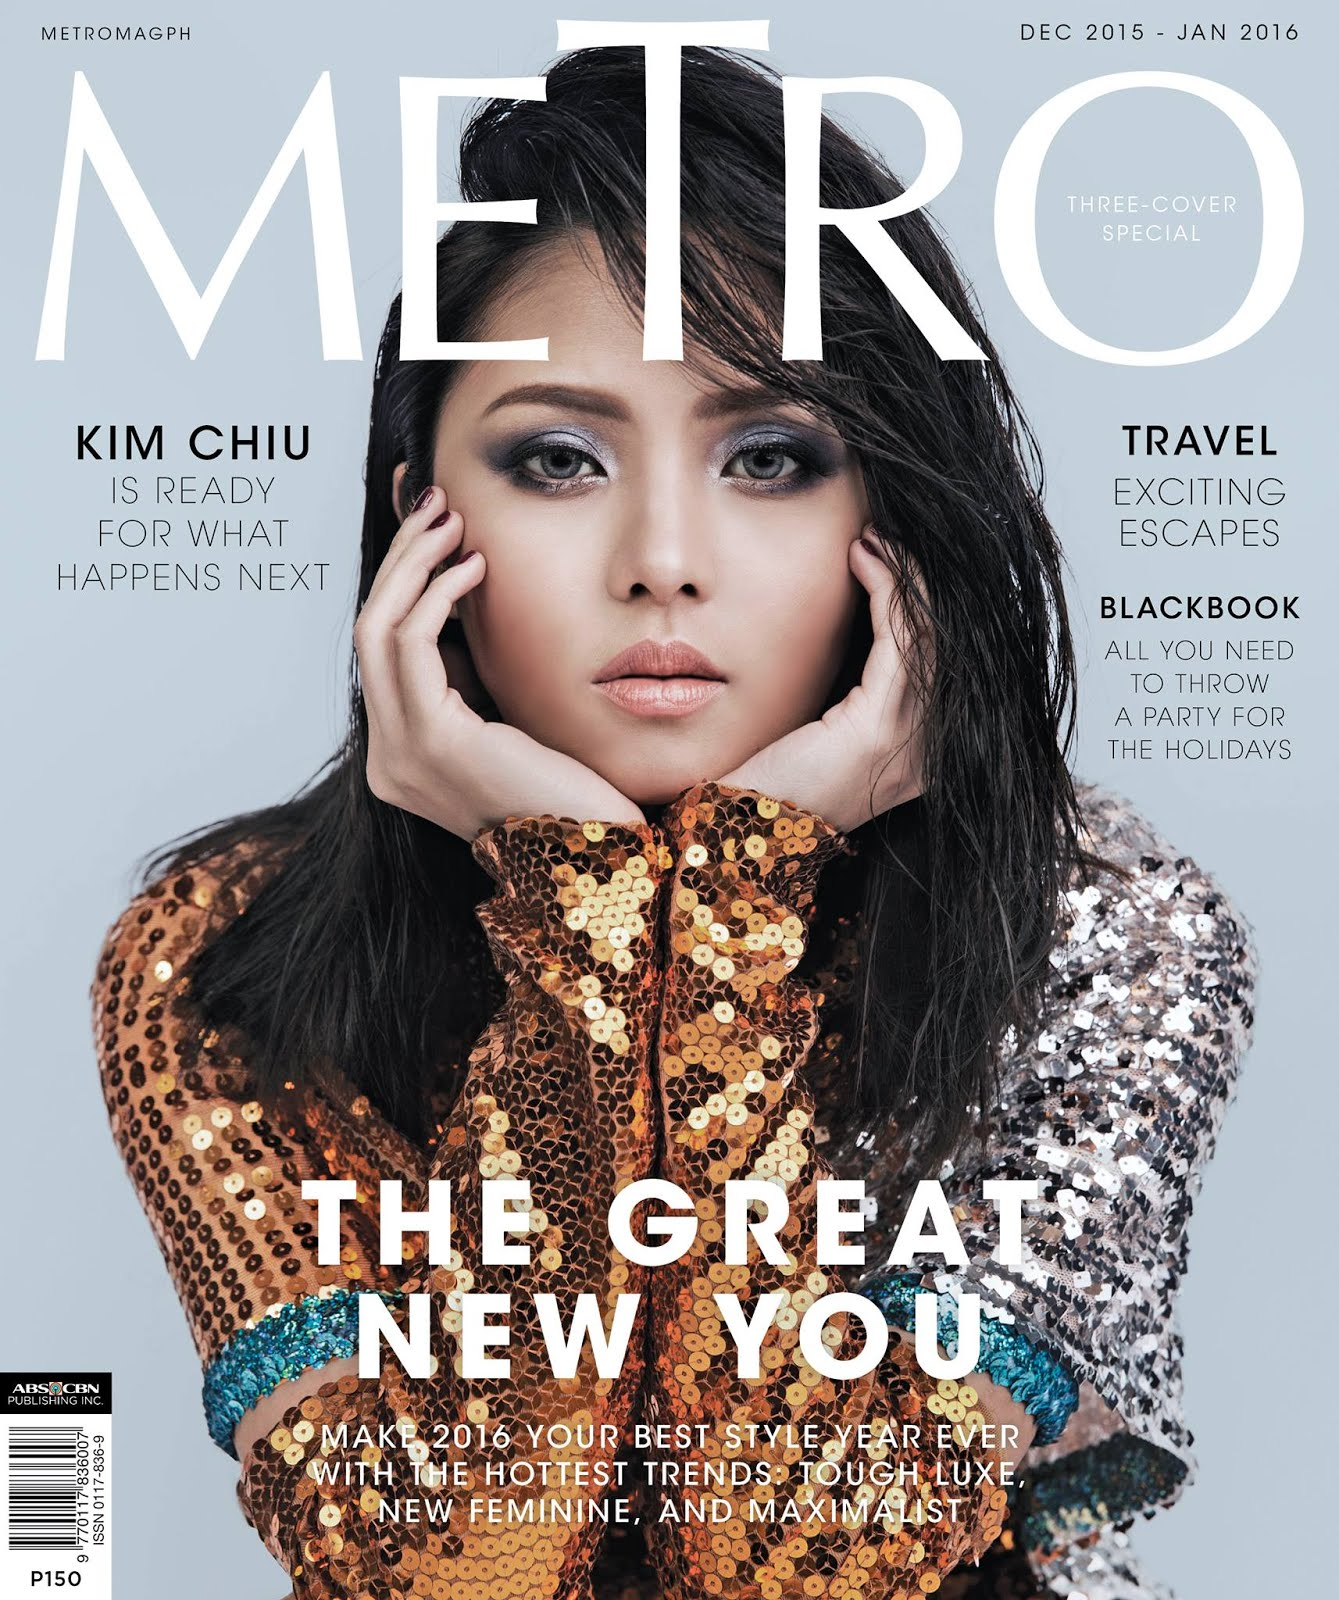 Kim Chiu photographed by Roy Macam for Metro Magazine's